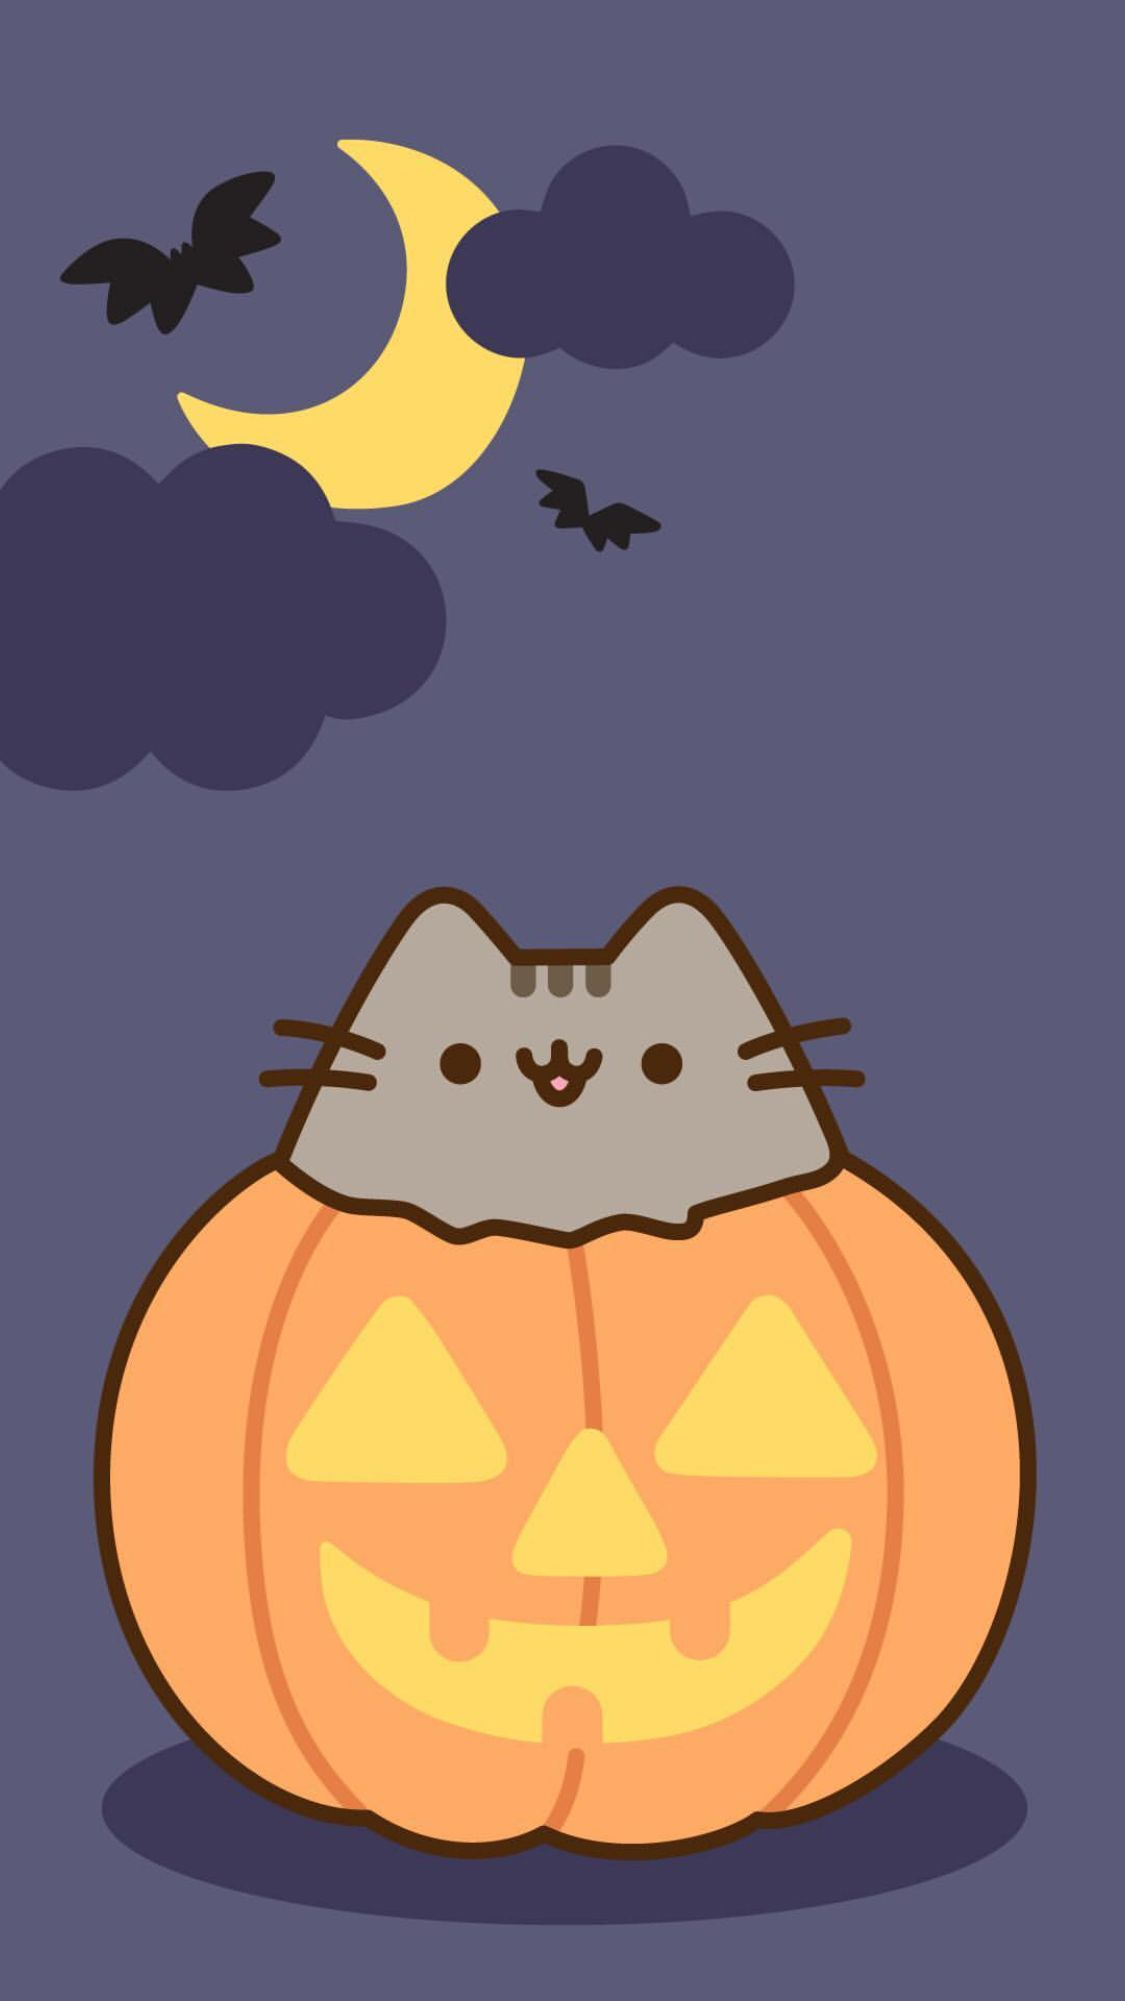 Pin By Susan Sargent On Kawaii Halloween Wallpaper Iphone Pusheen Cute Halloween Wallpaper Cute